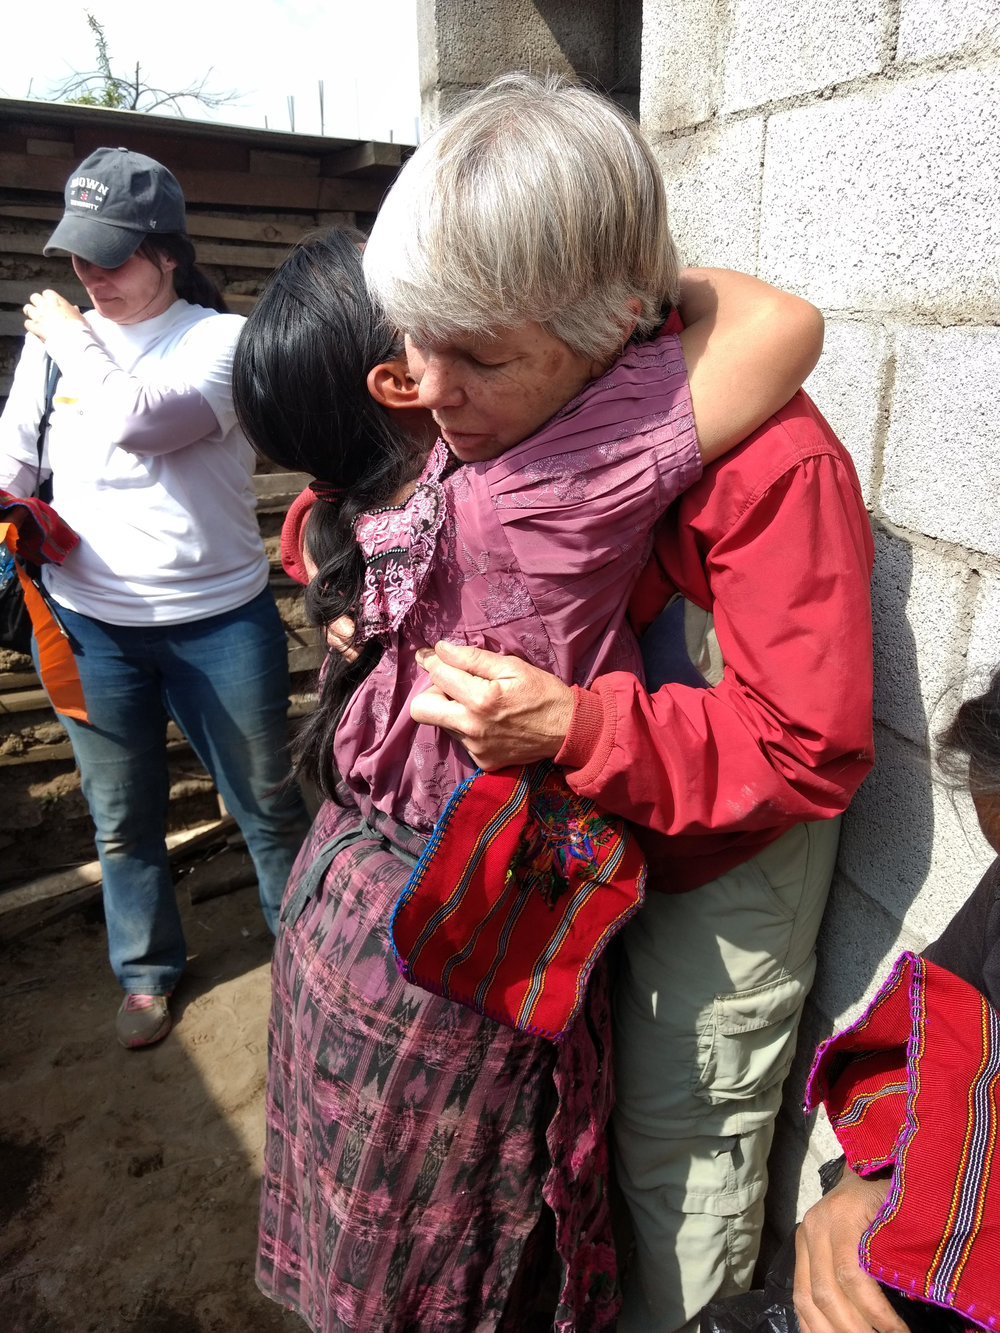 The family at the second house made a weaving of the volunteers. This photo shows Pamela receiving her weaving from Blanca.